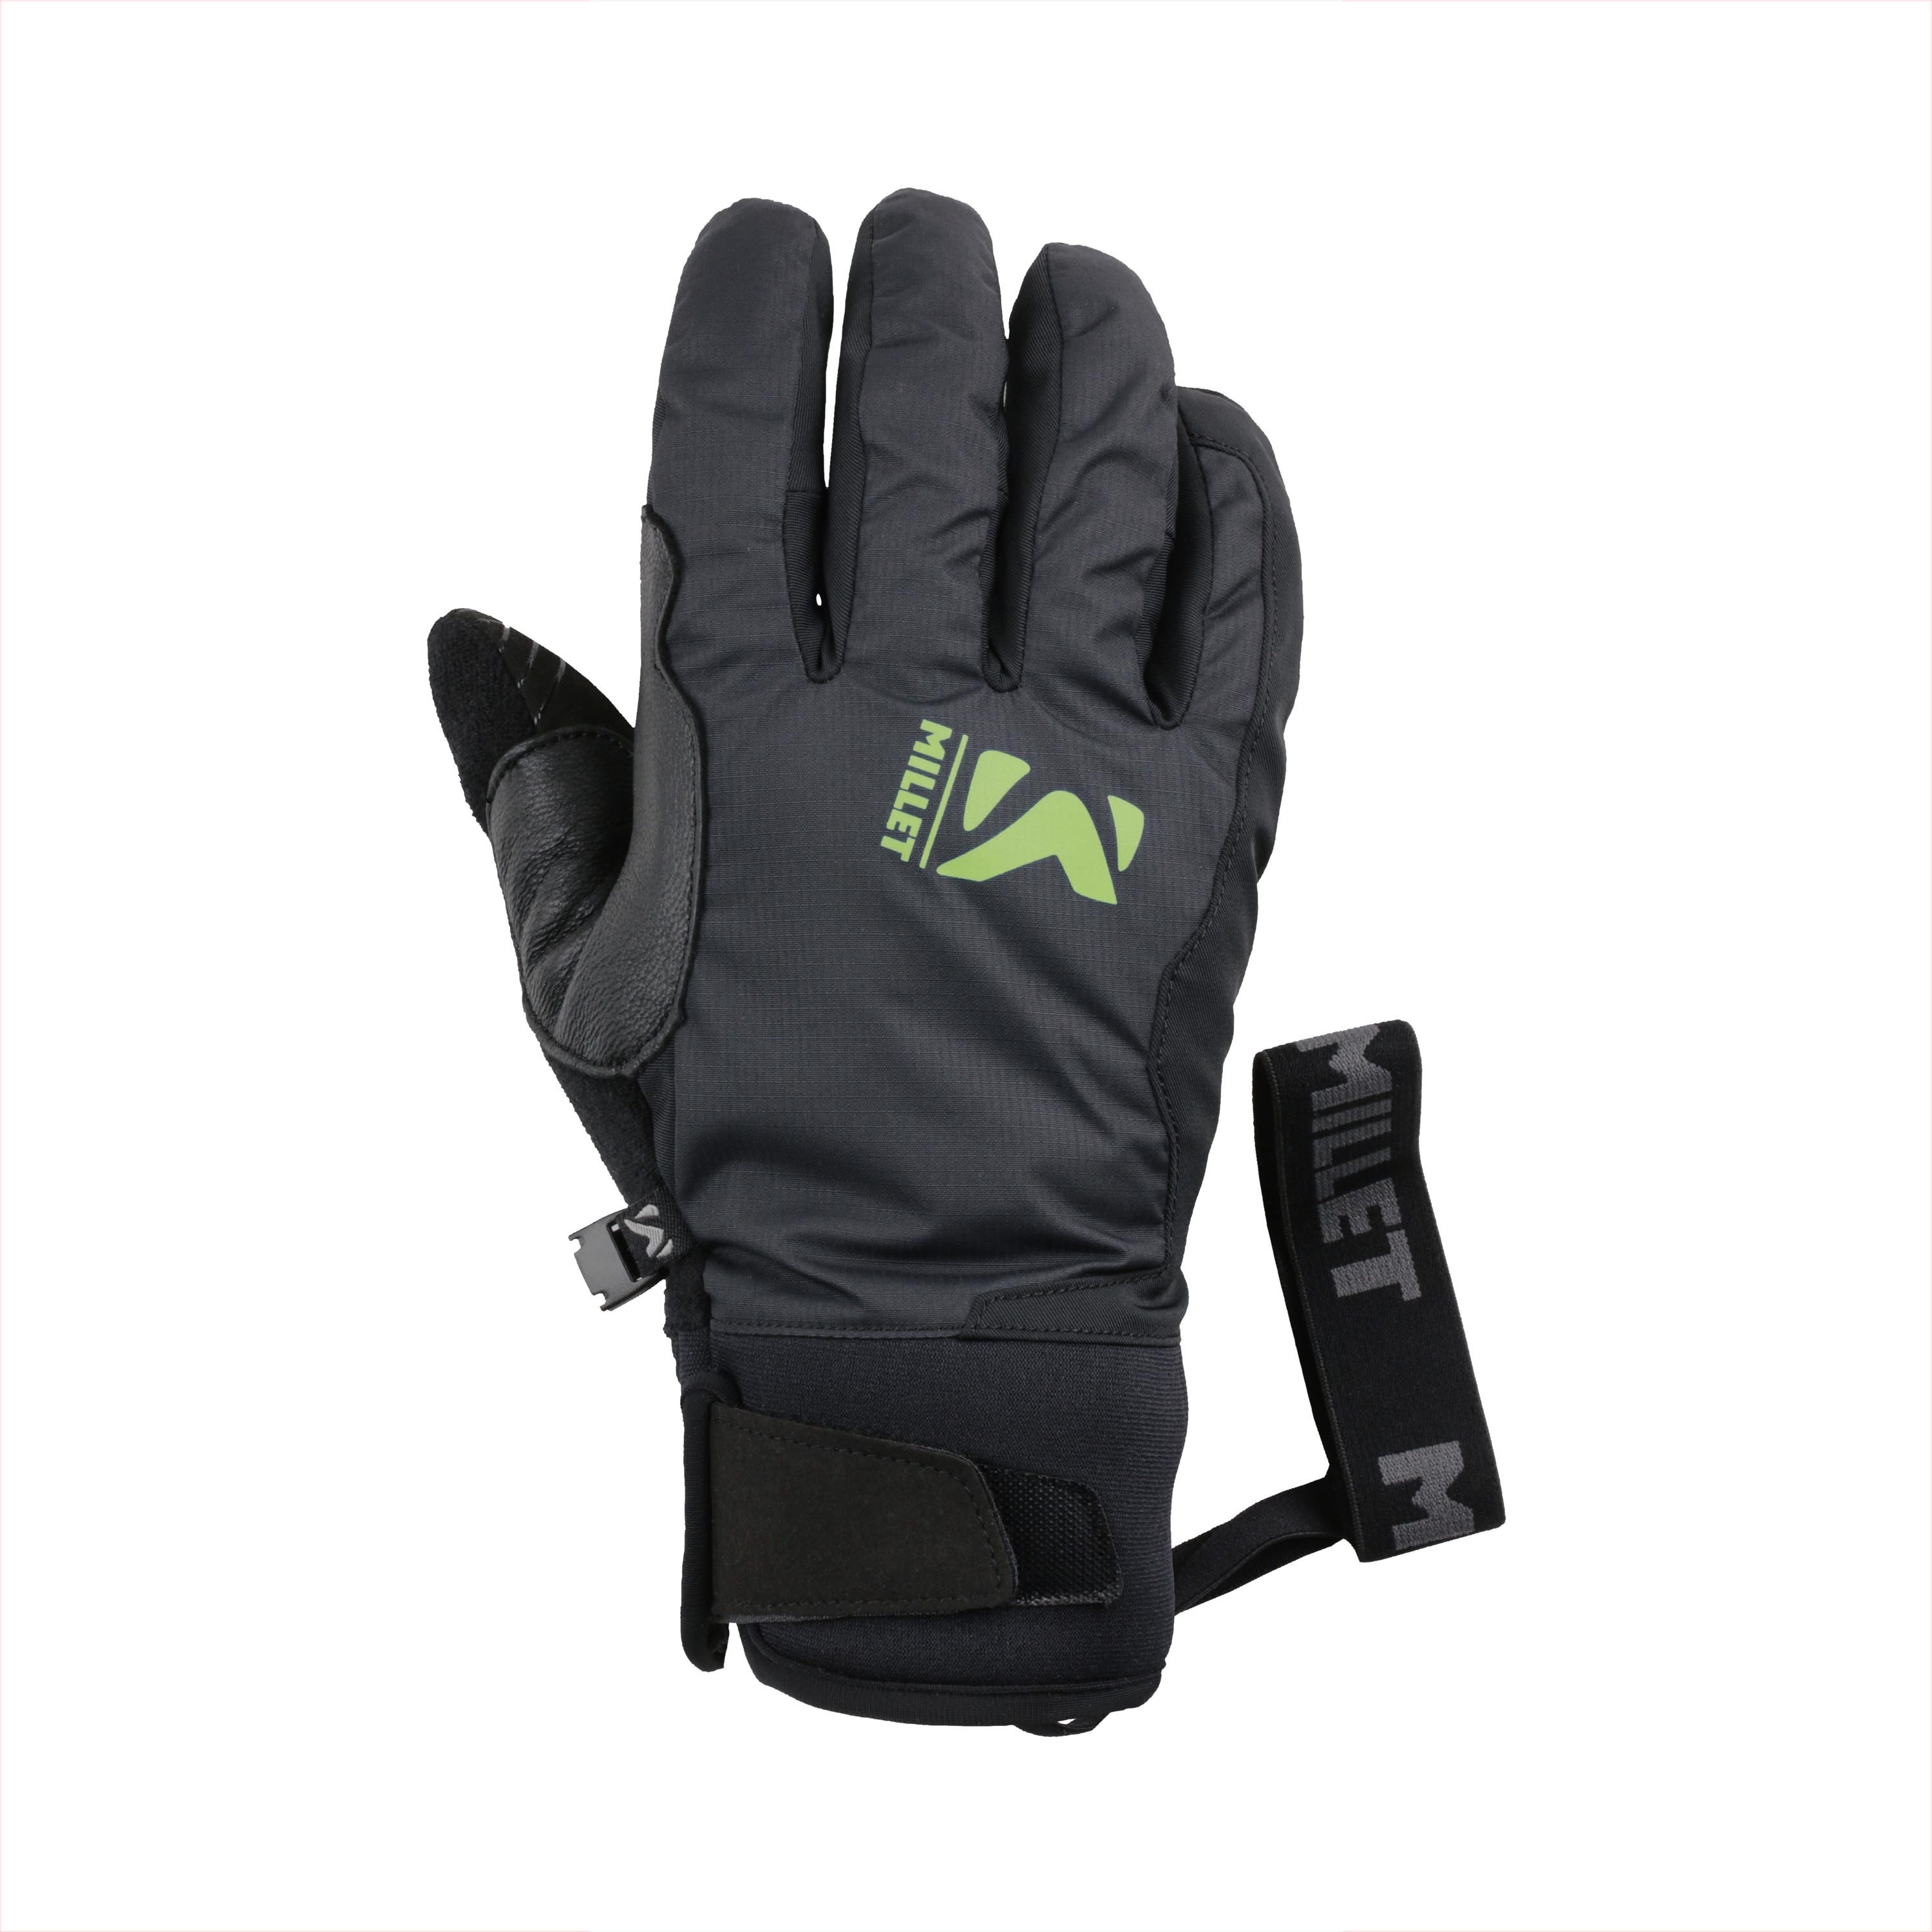 TOURING GLOVE II M